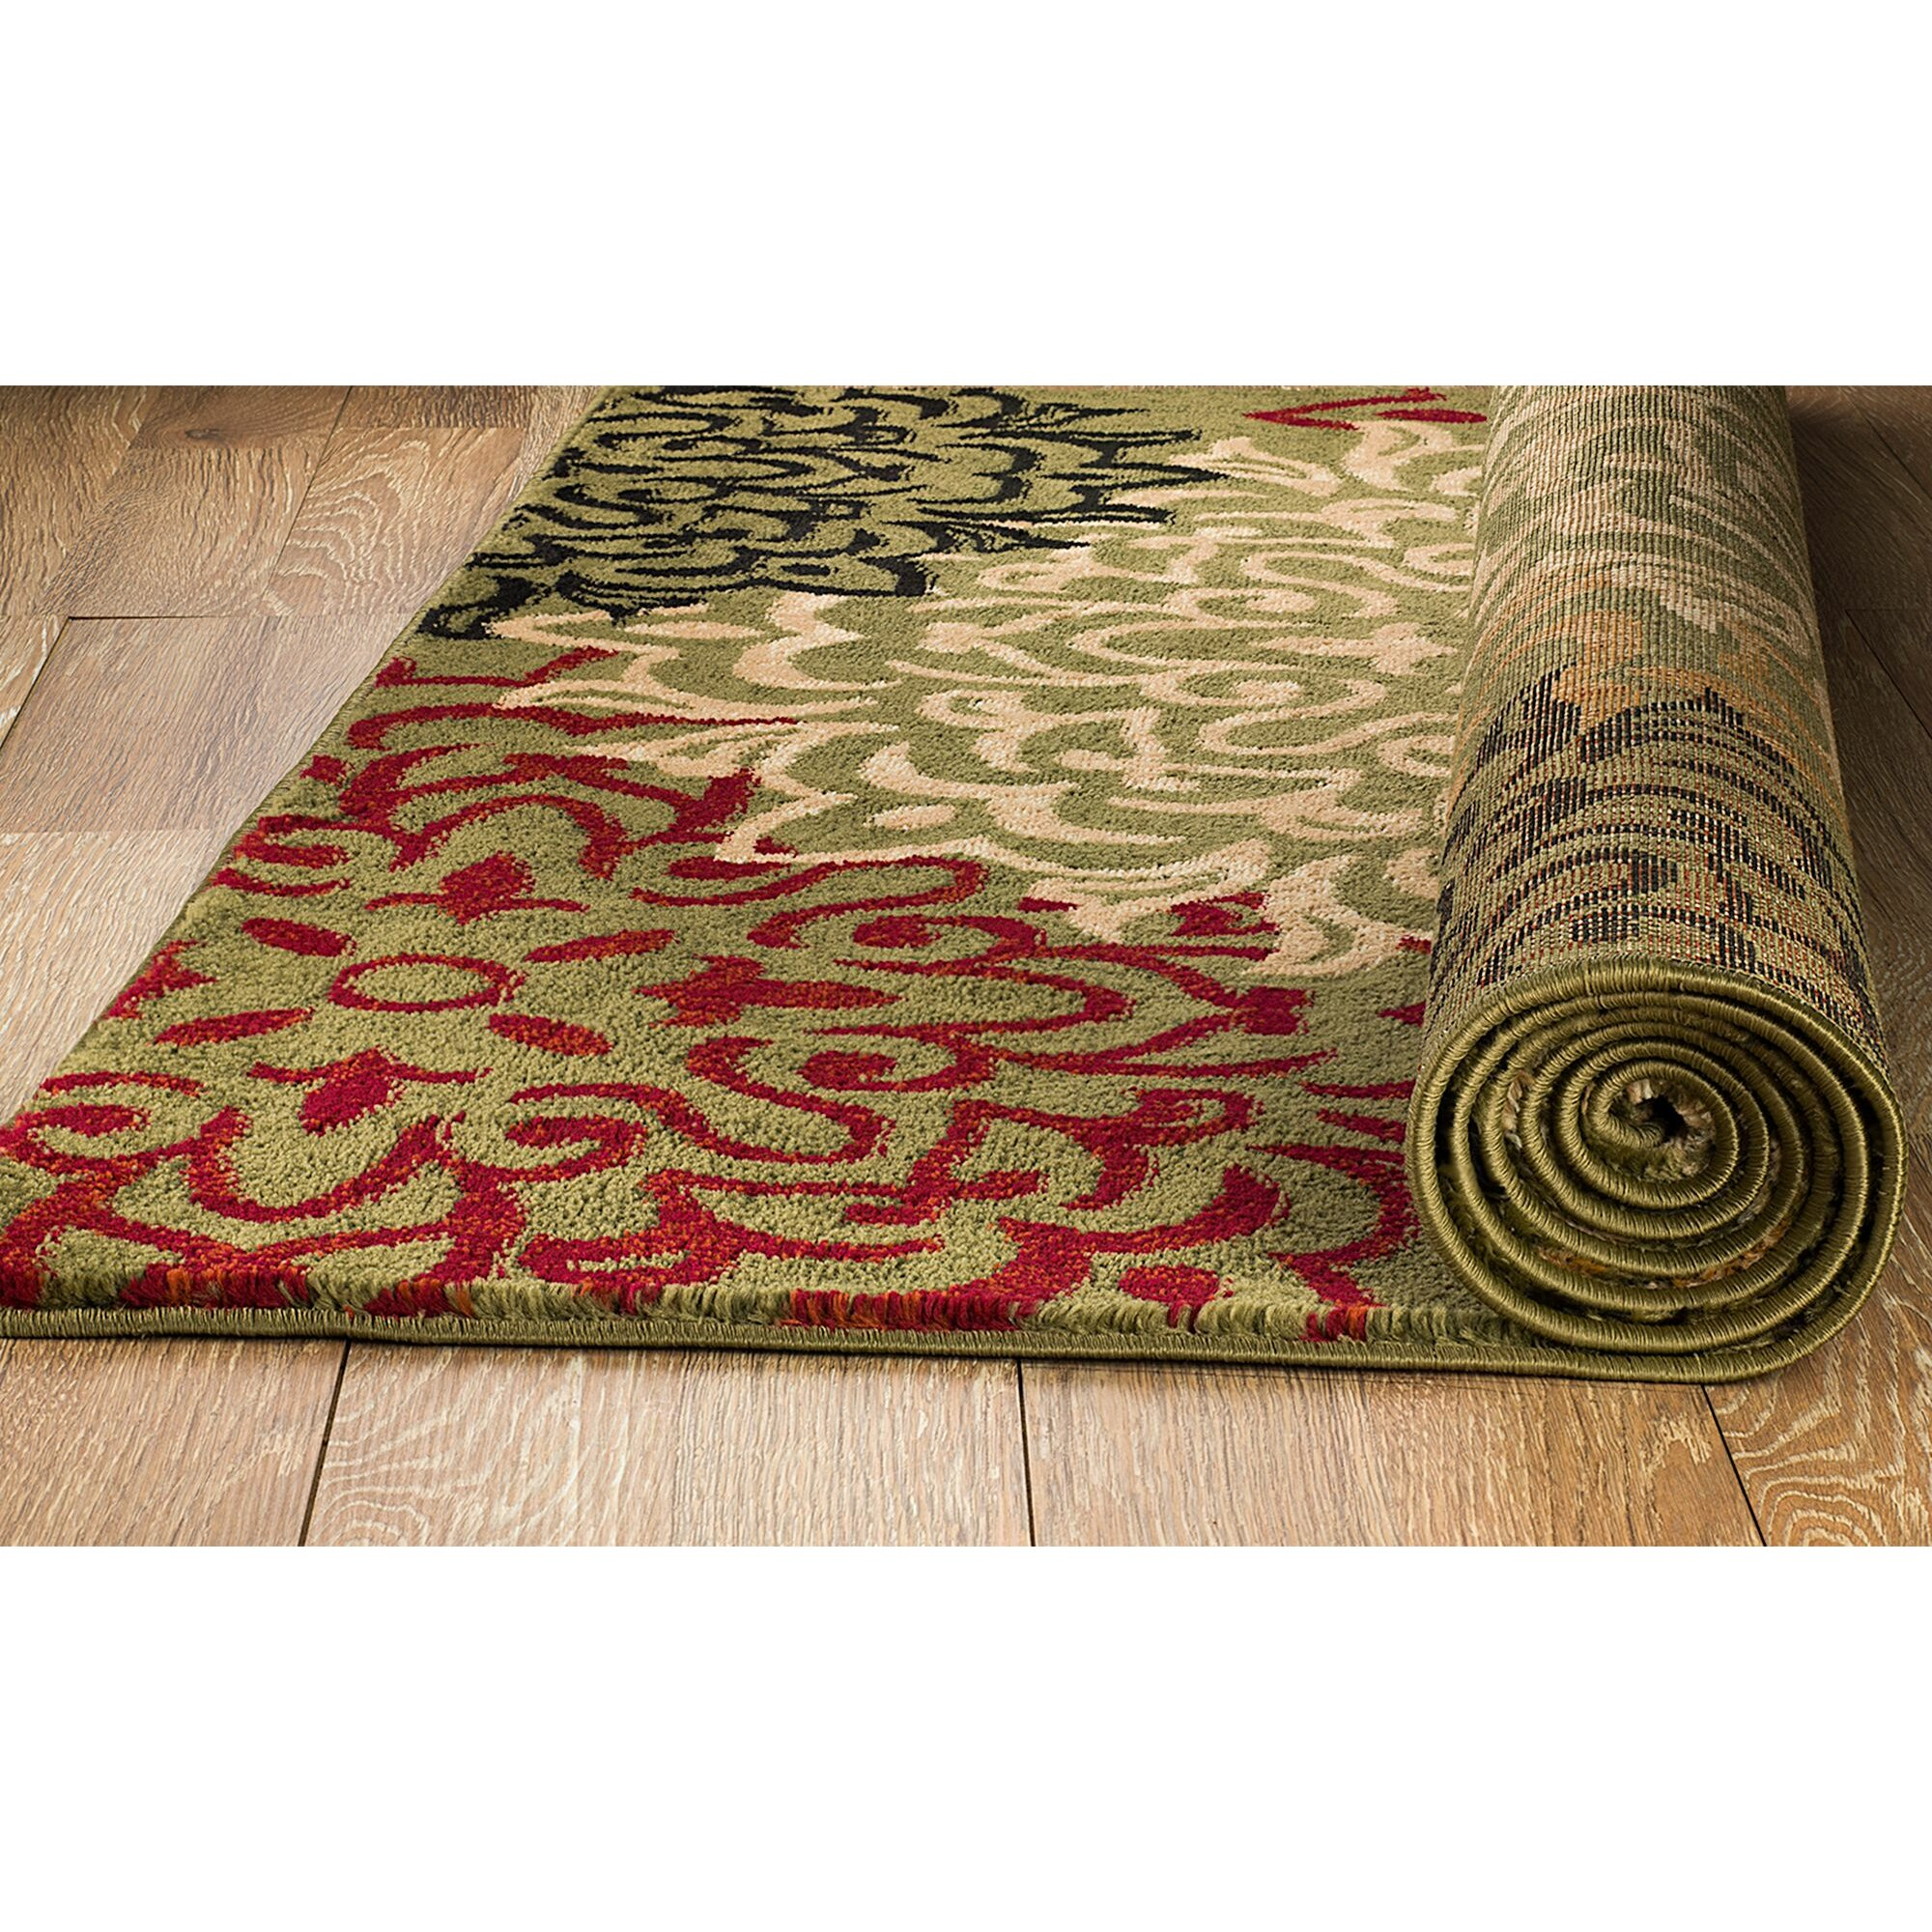 Rug and decor inc summit hand woven area rug reviews for Decor international handwoven rugs